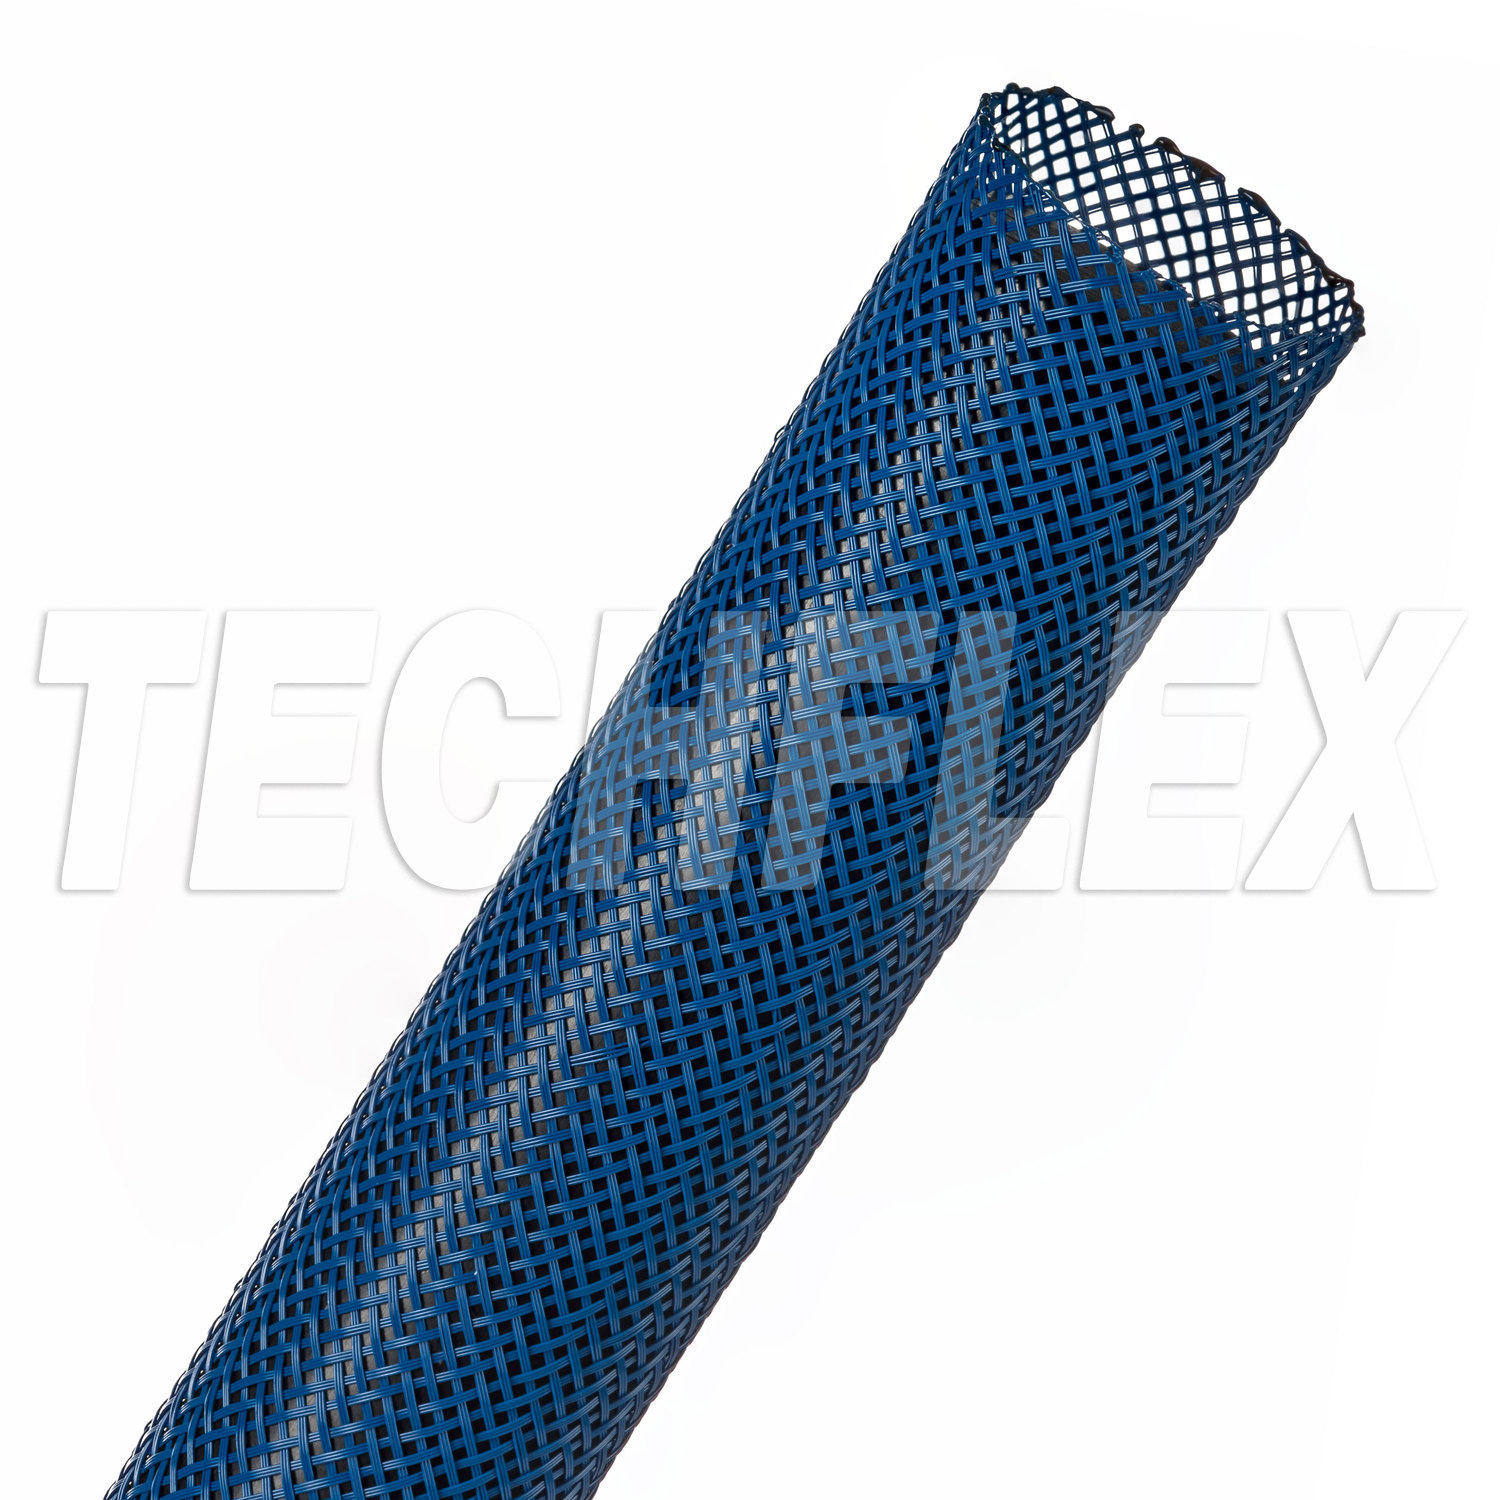 3/4In-1 3/4In Expandable Tubing Blue 50 Foot Roll PET6-50-BE